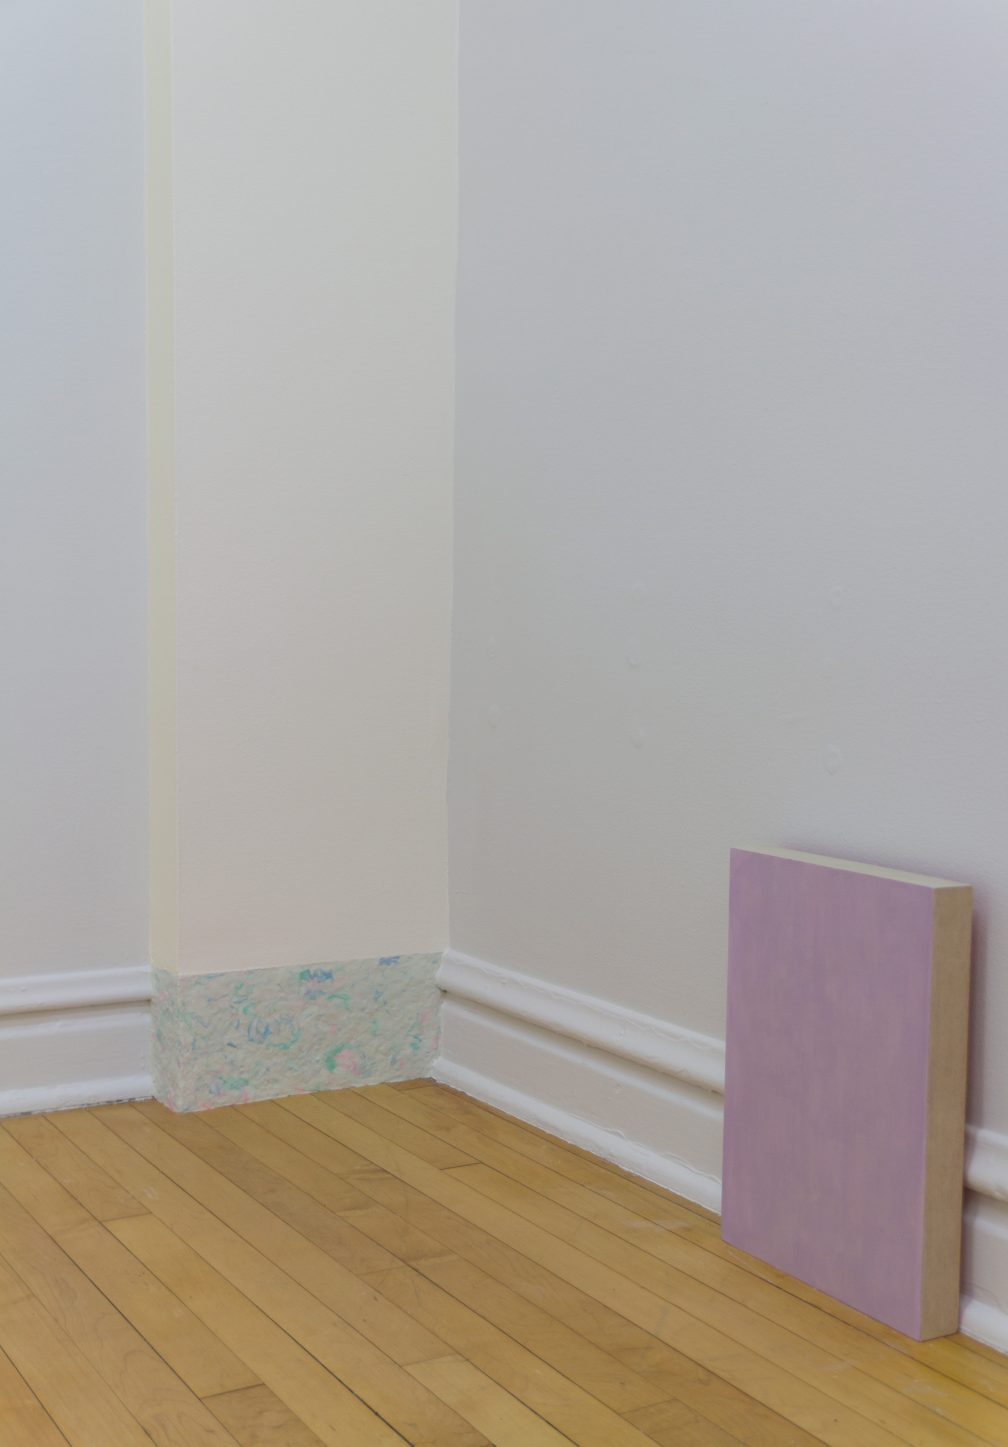 Installation view, Middle Double, 2014